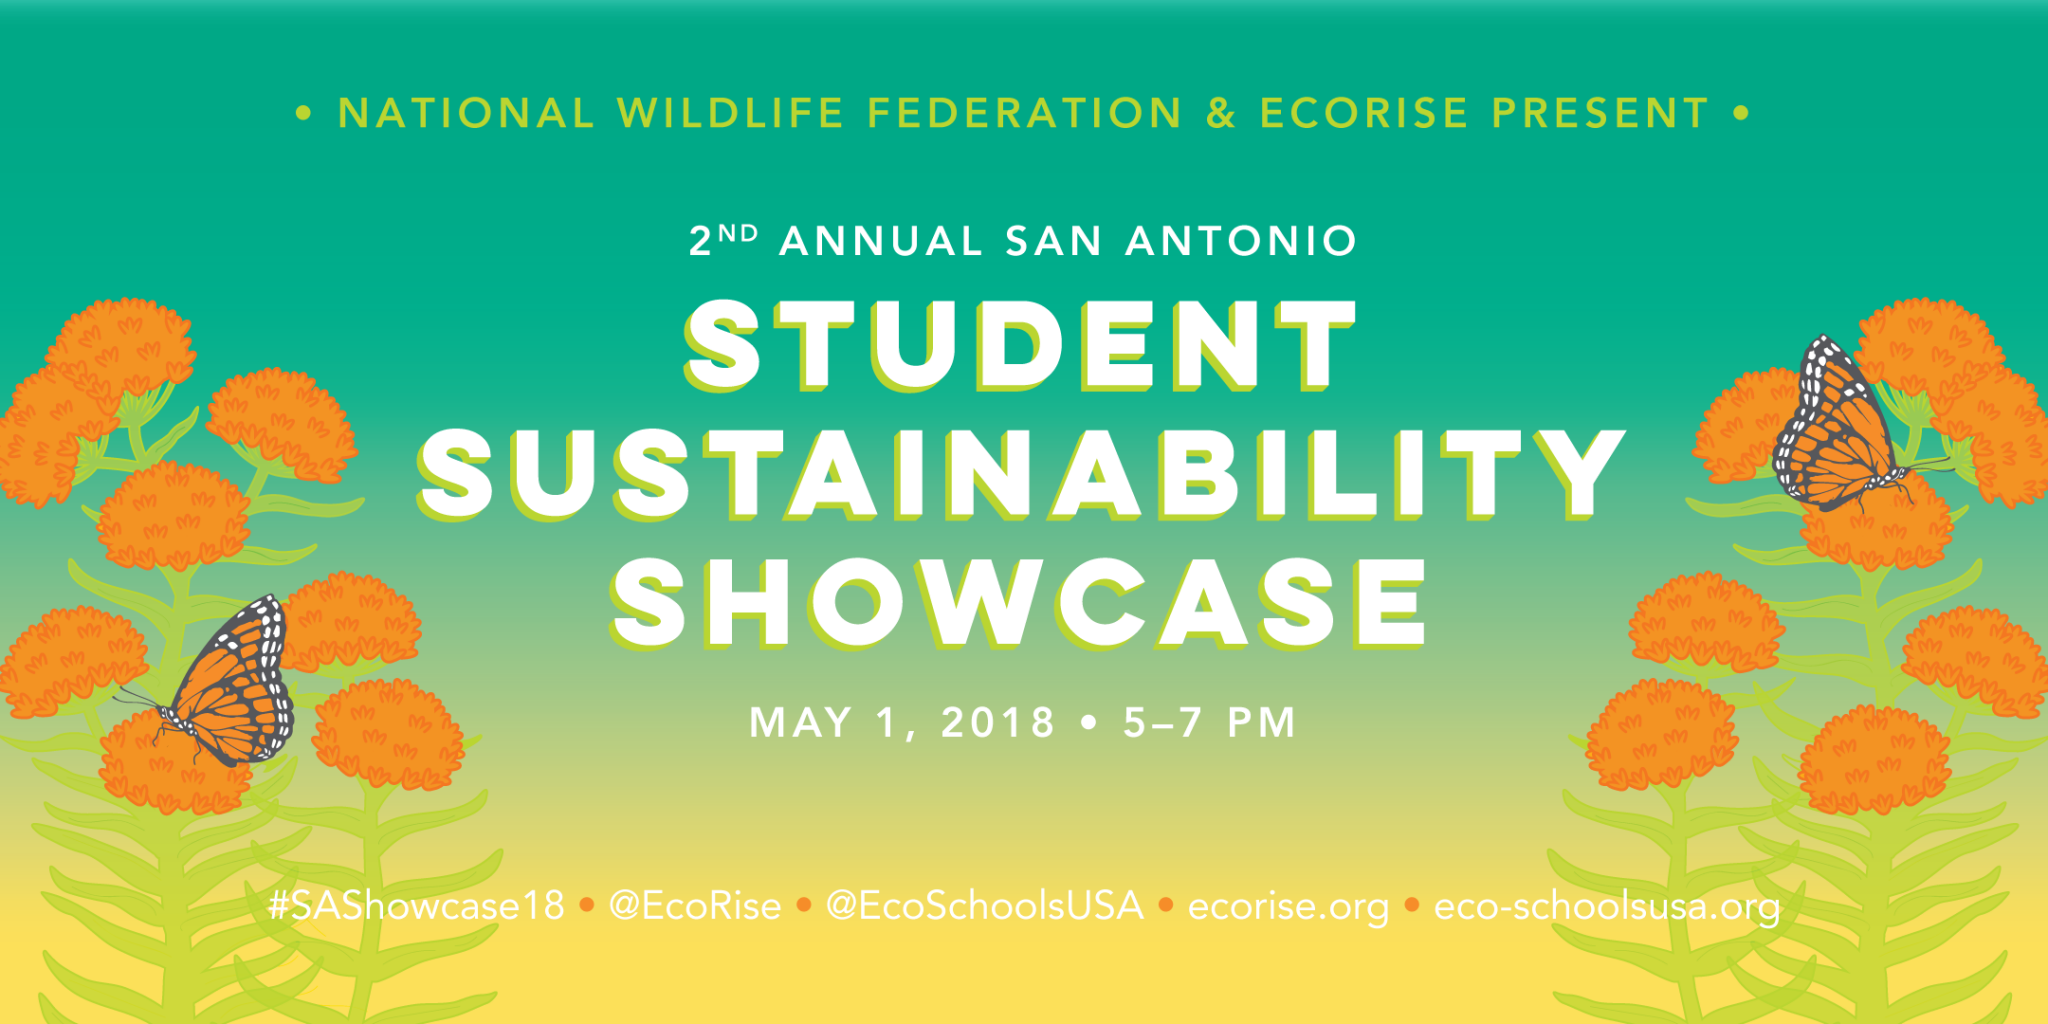 2nd Annual San Antonio Student Sustainability Showcase